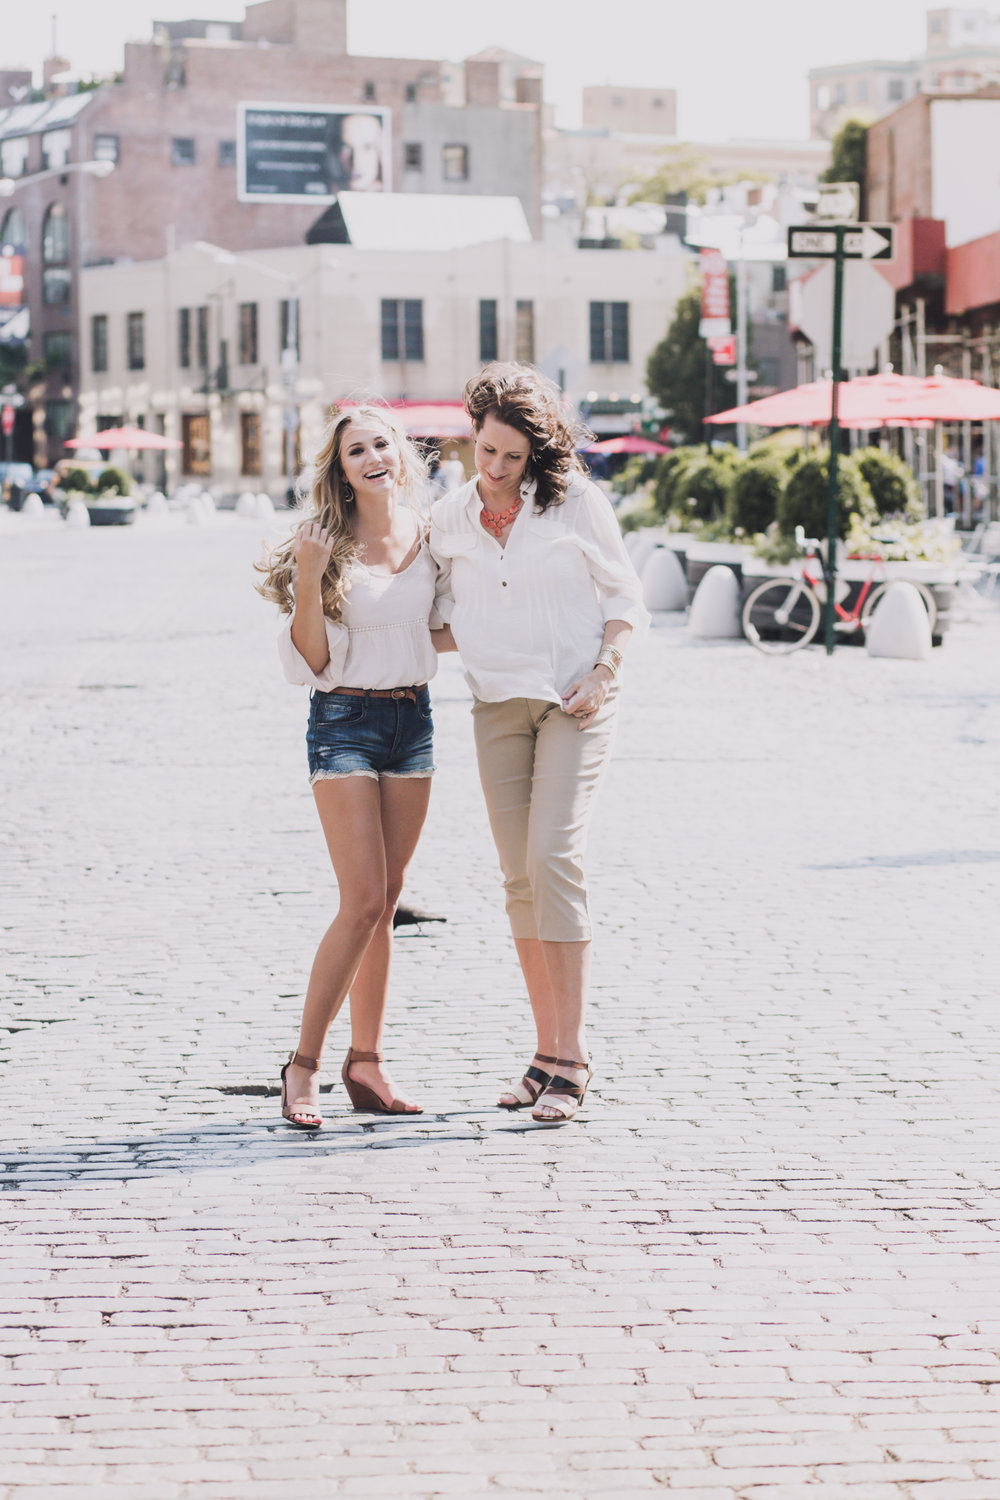 20140712-030-mom_daughter_nyc_portraits.jpg